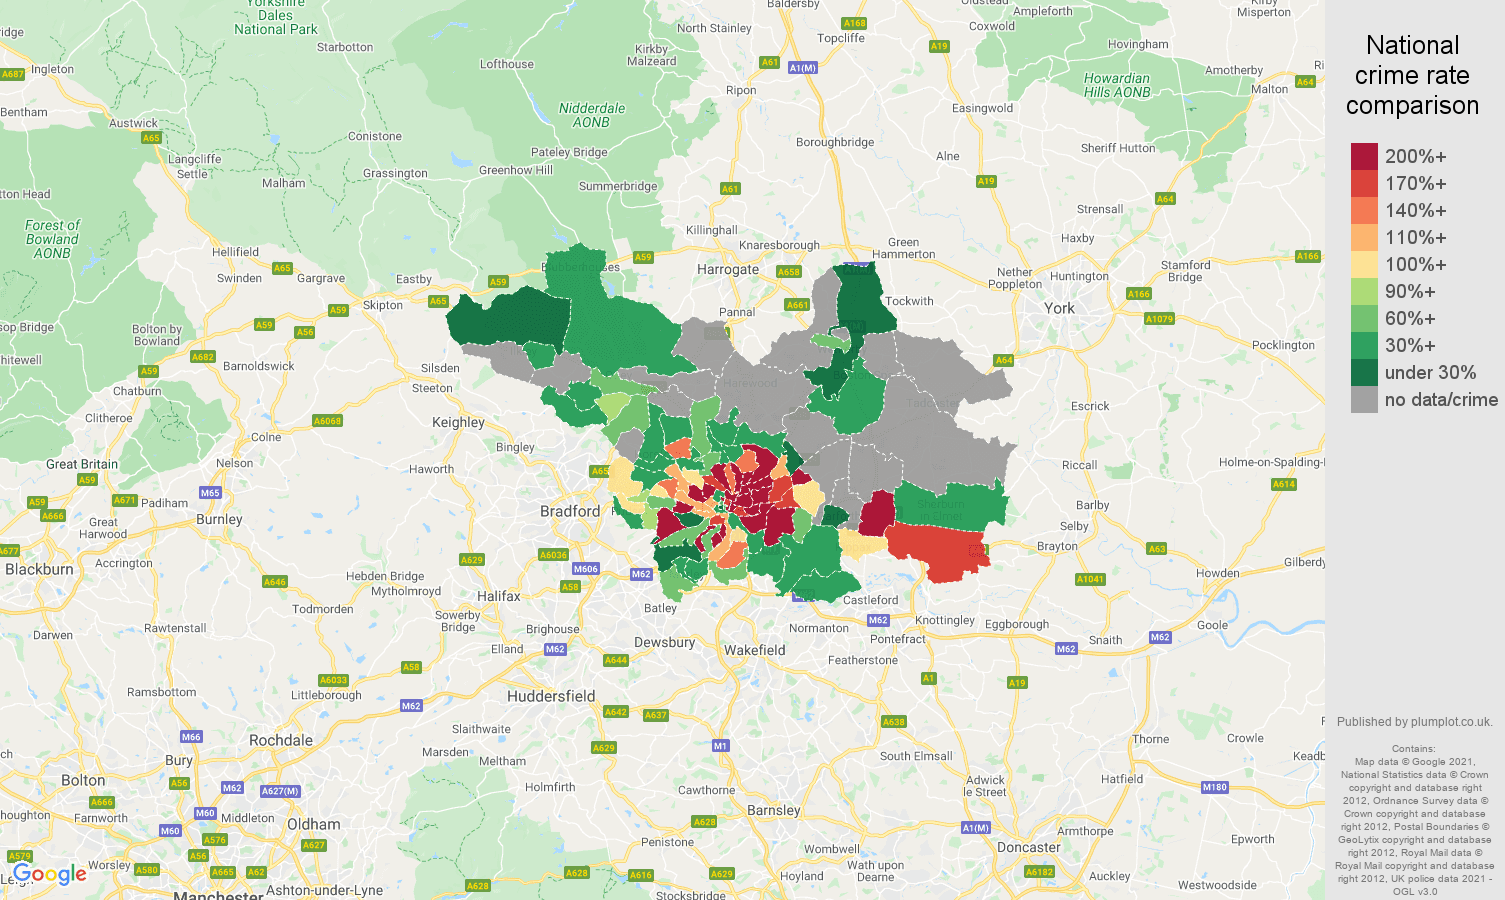 Leeds robbery crime rate comparison map